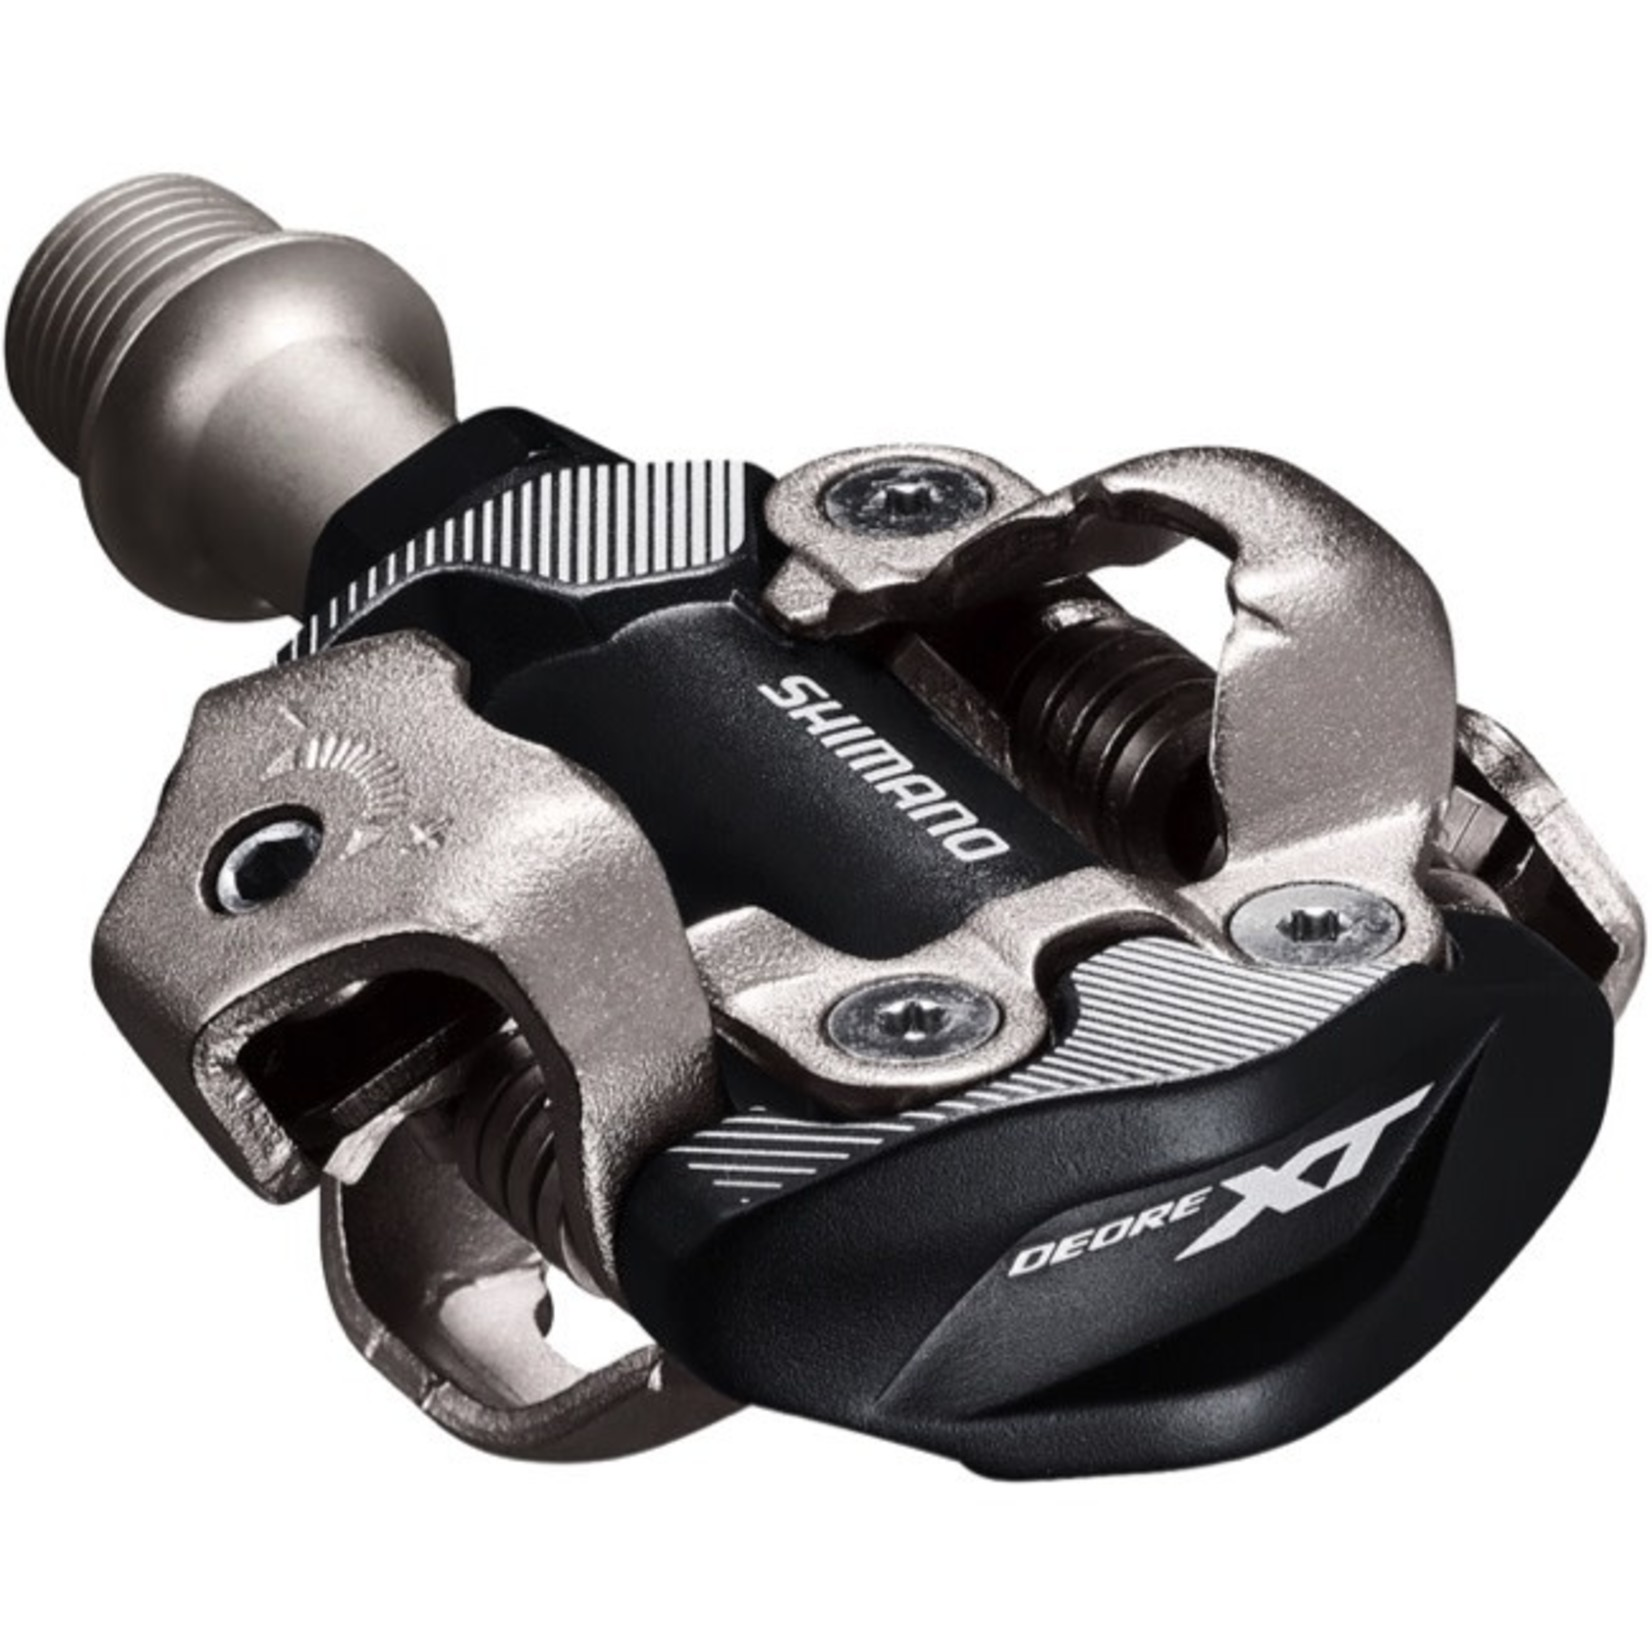 Shimano Shimano M8100 XT Pedals with Cleats